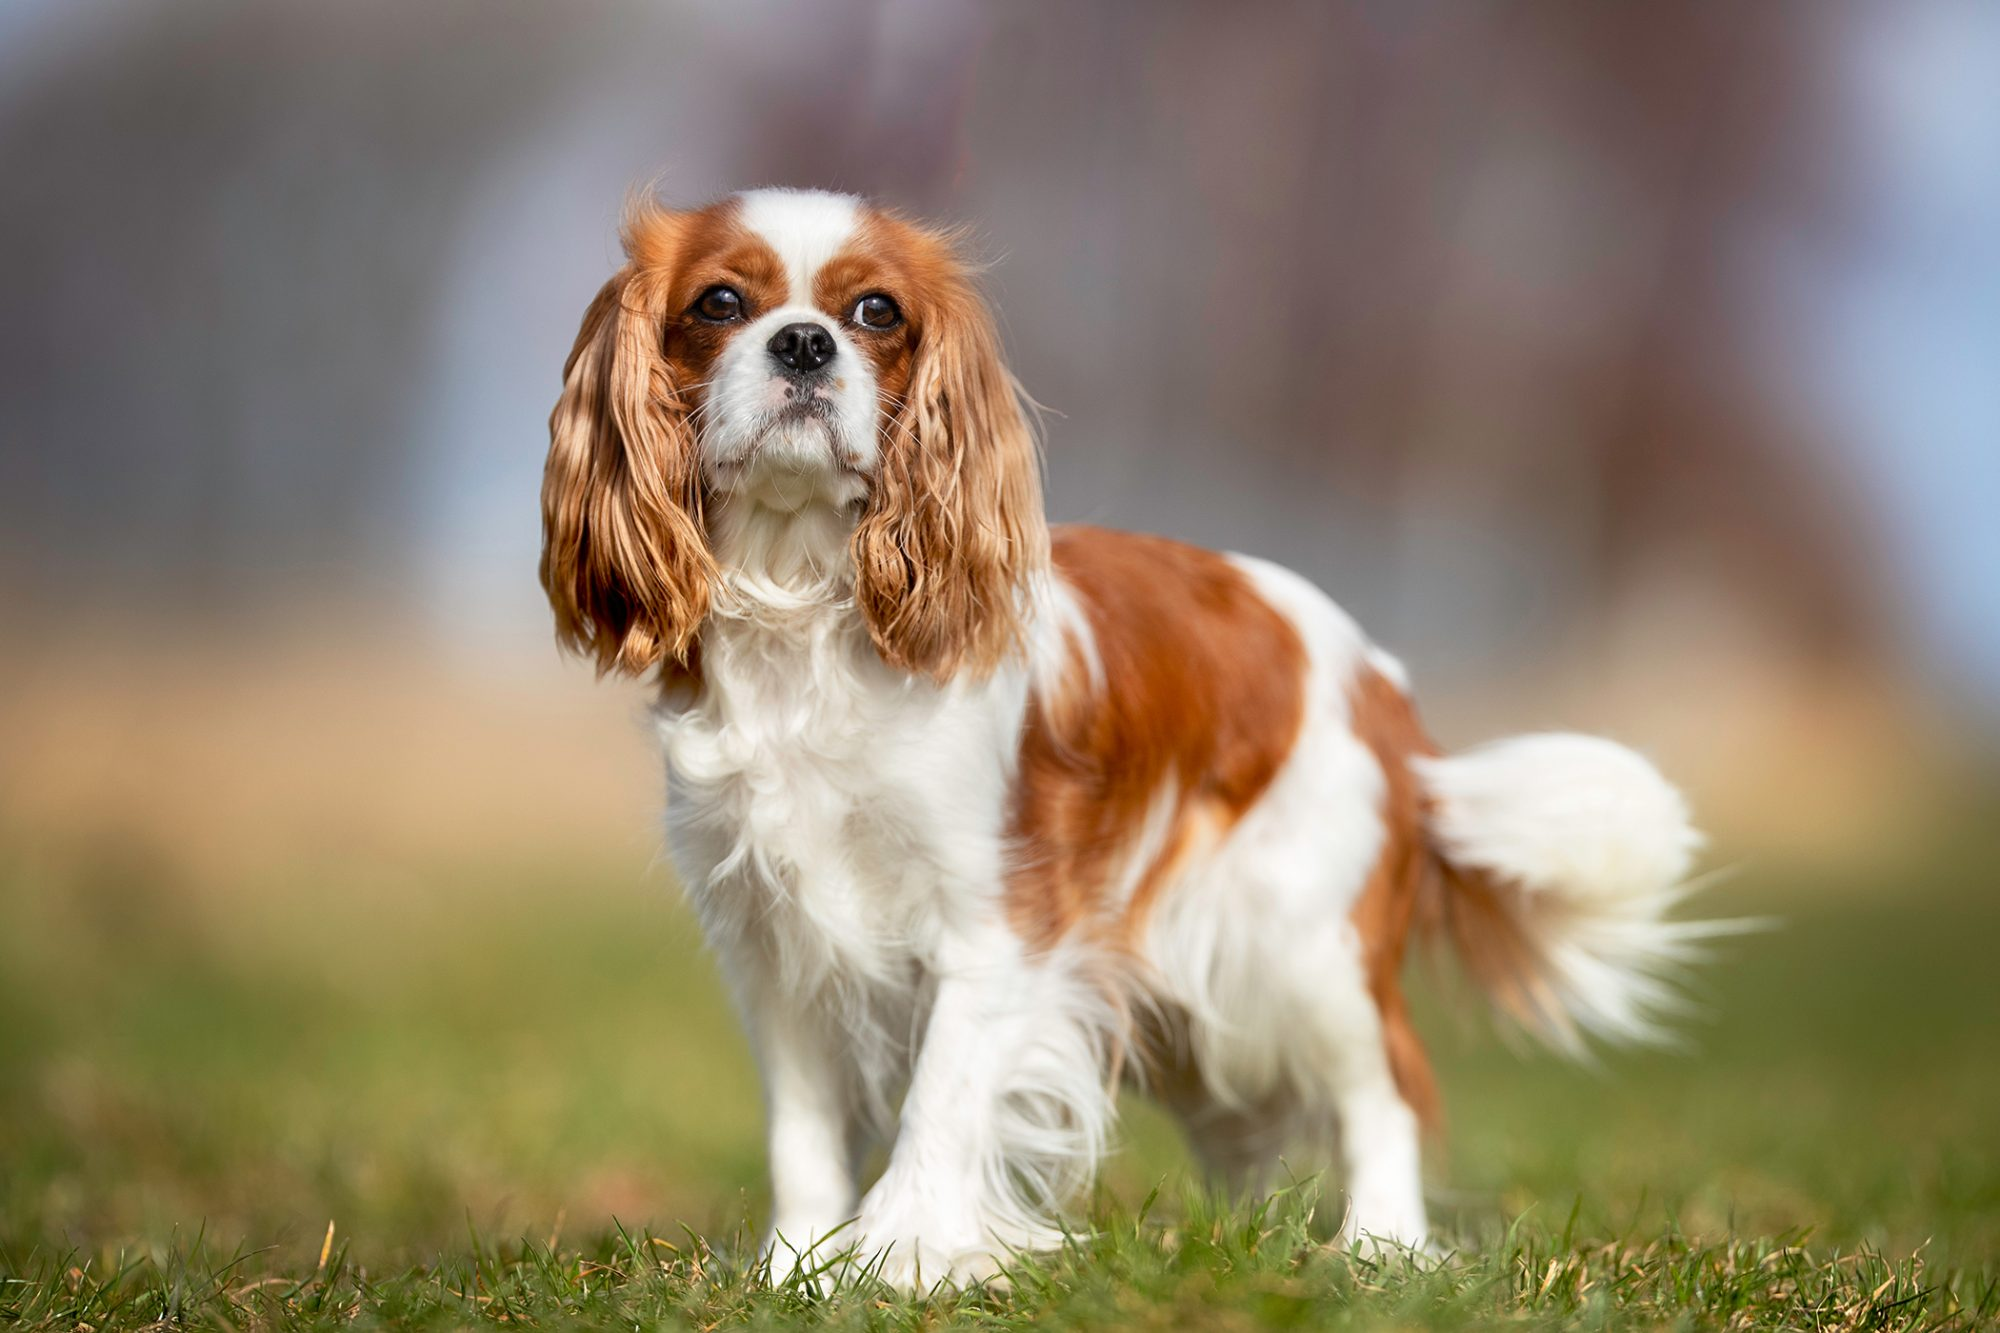 Red and white spaniel stands in grass